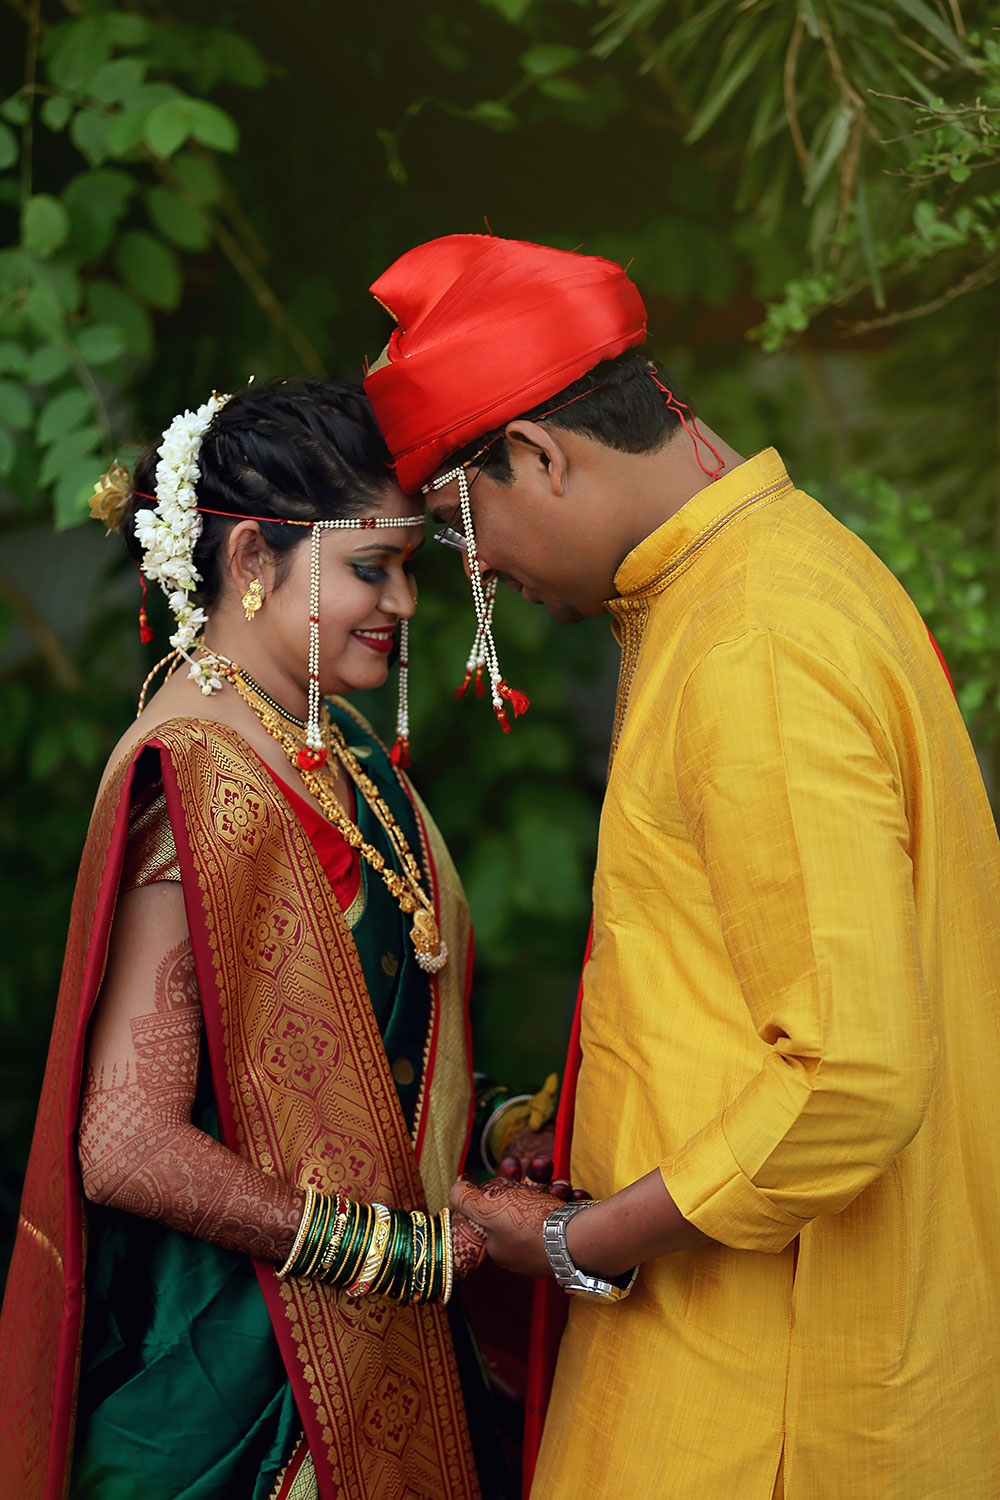 wedding-shoot@7072863$img-1.jpg